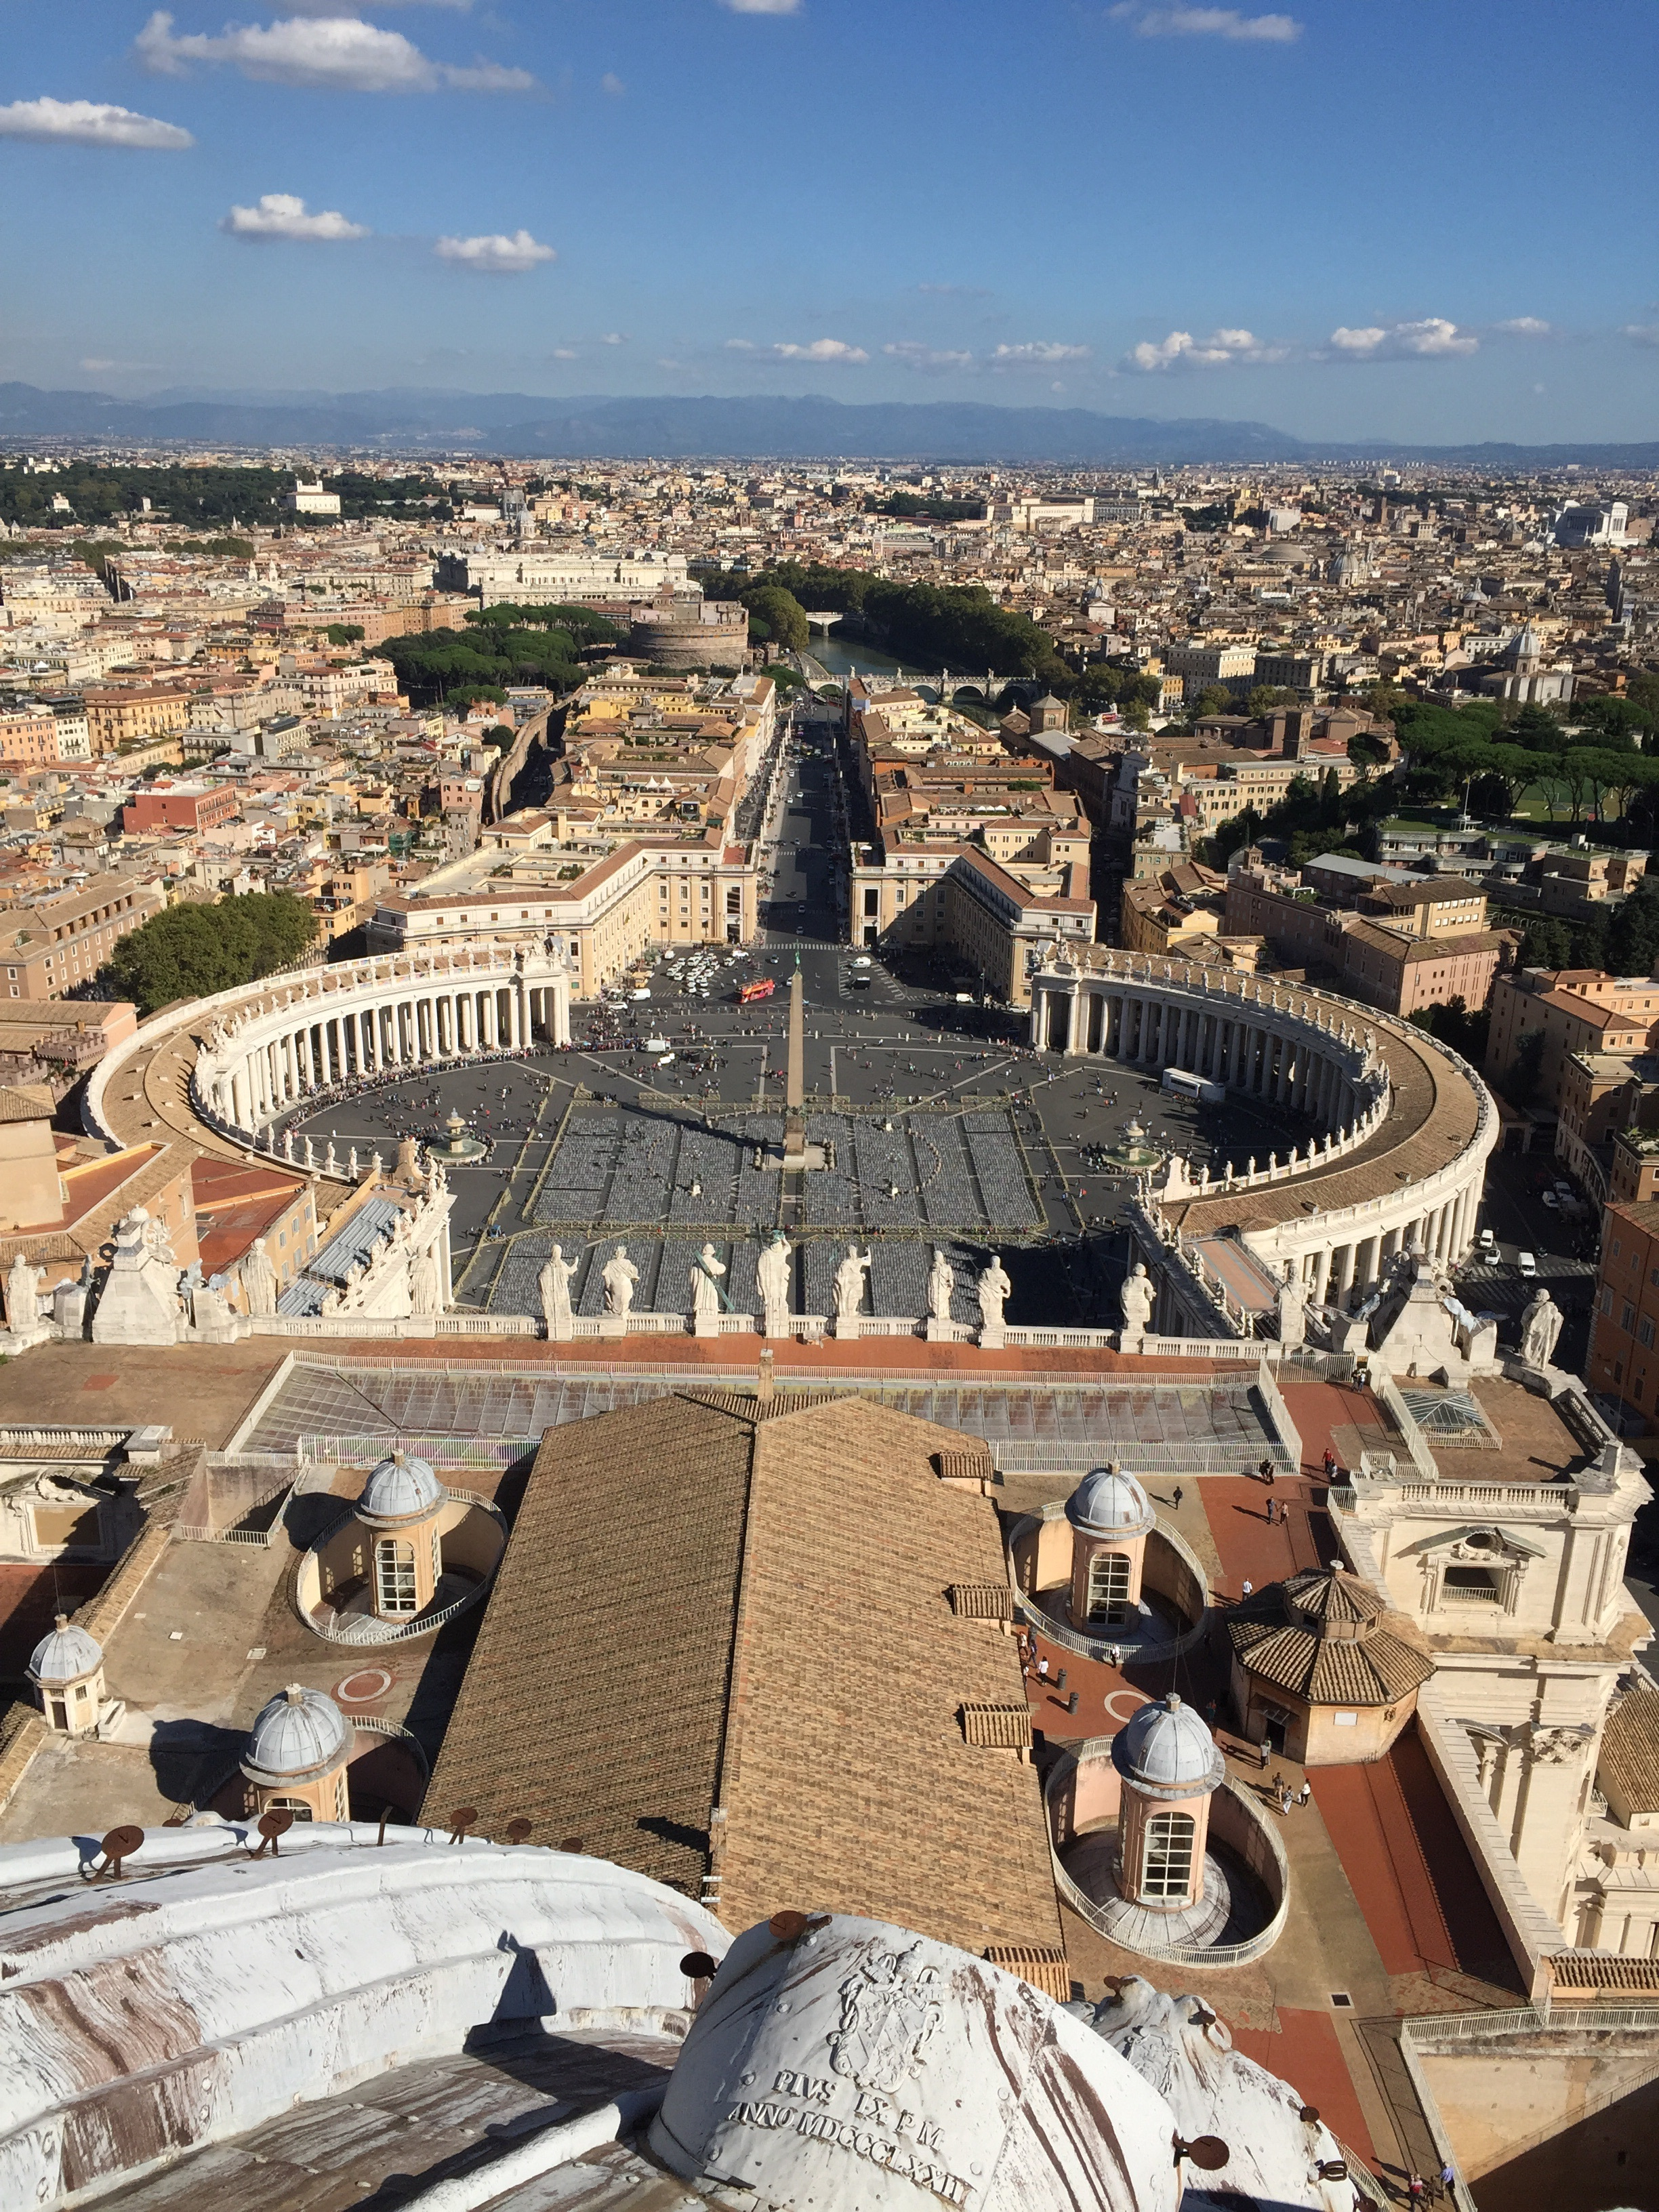 View from the top of St. Peter's basilica.